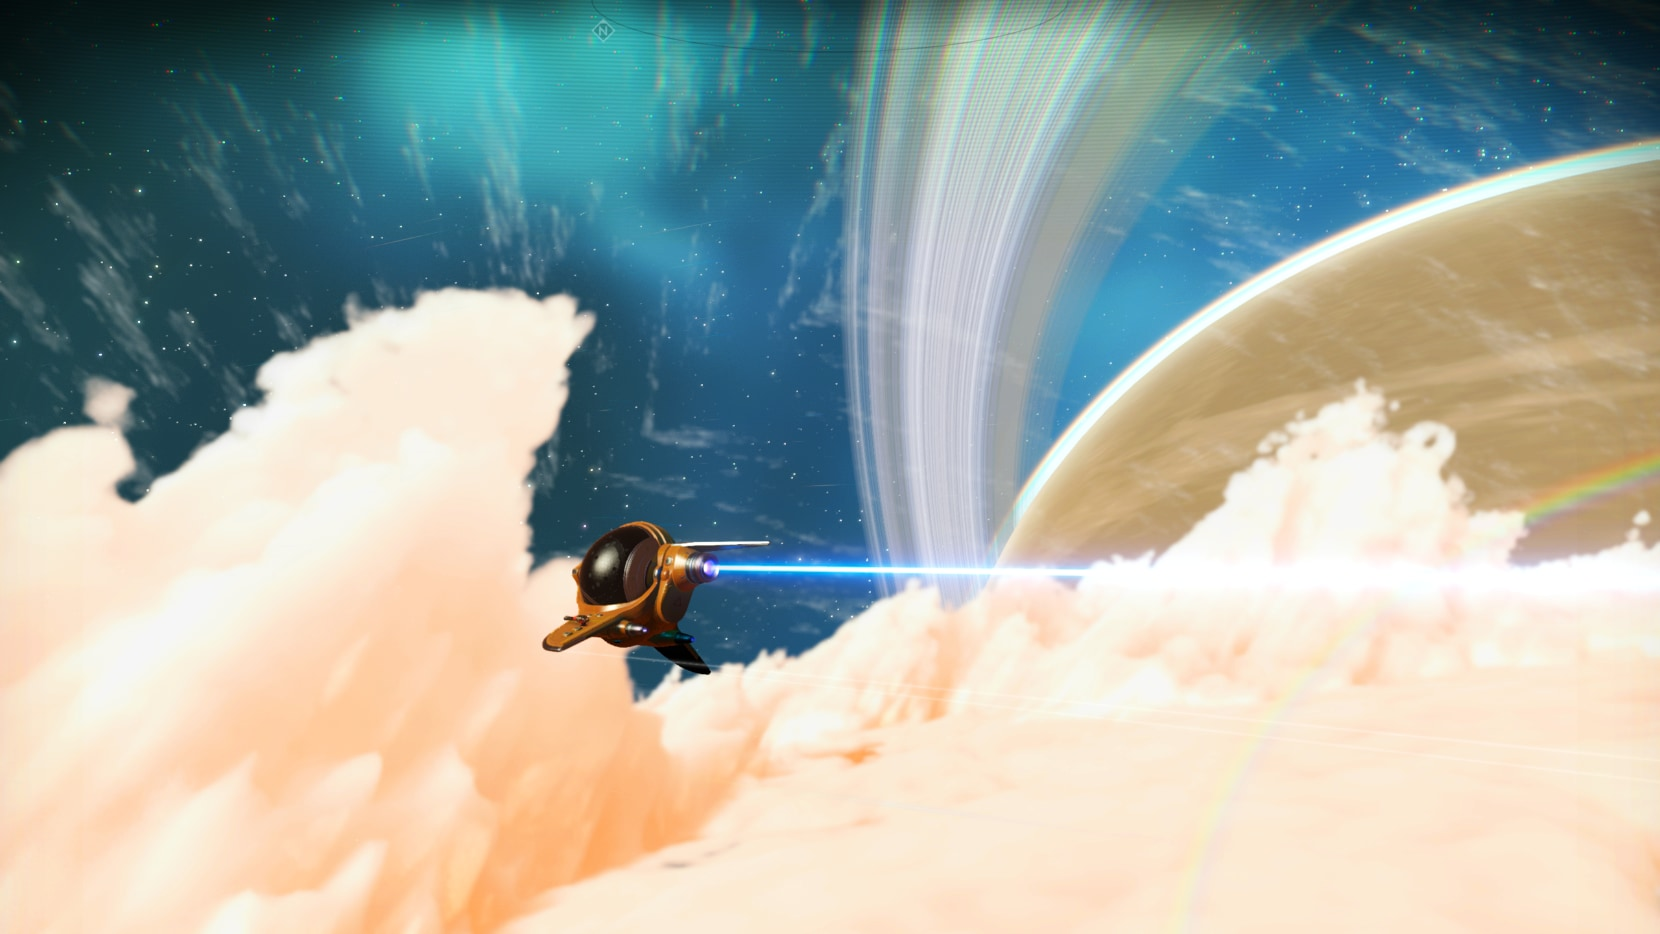 An exotic ship flying through the clouds